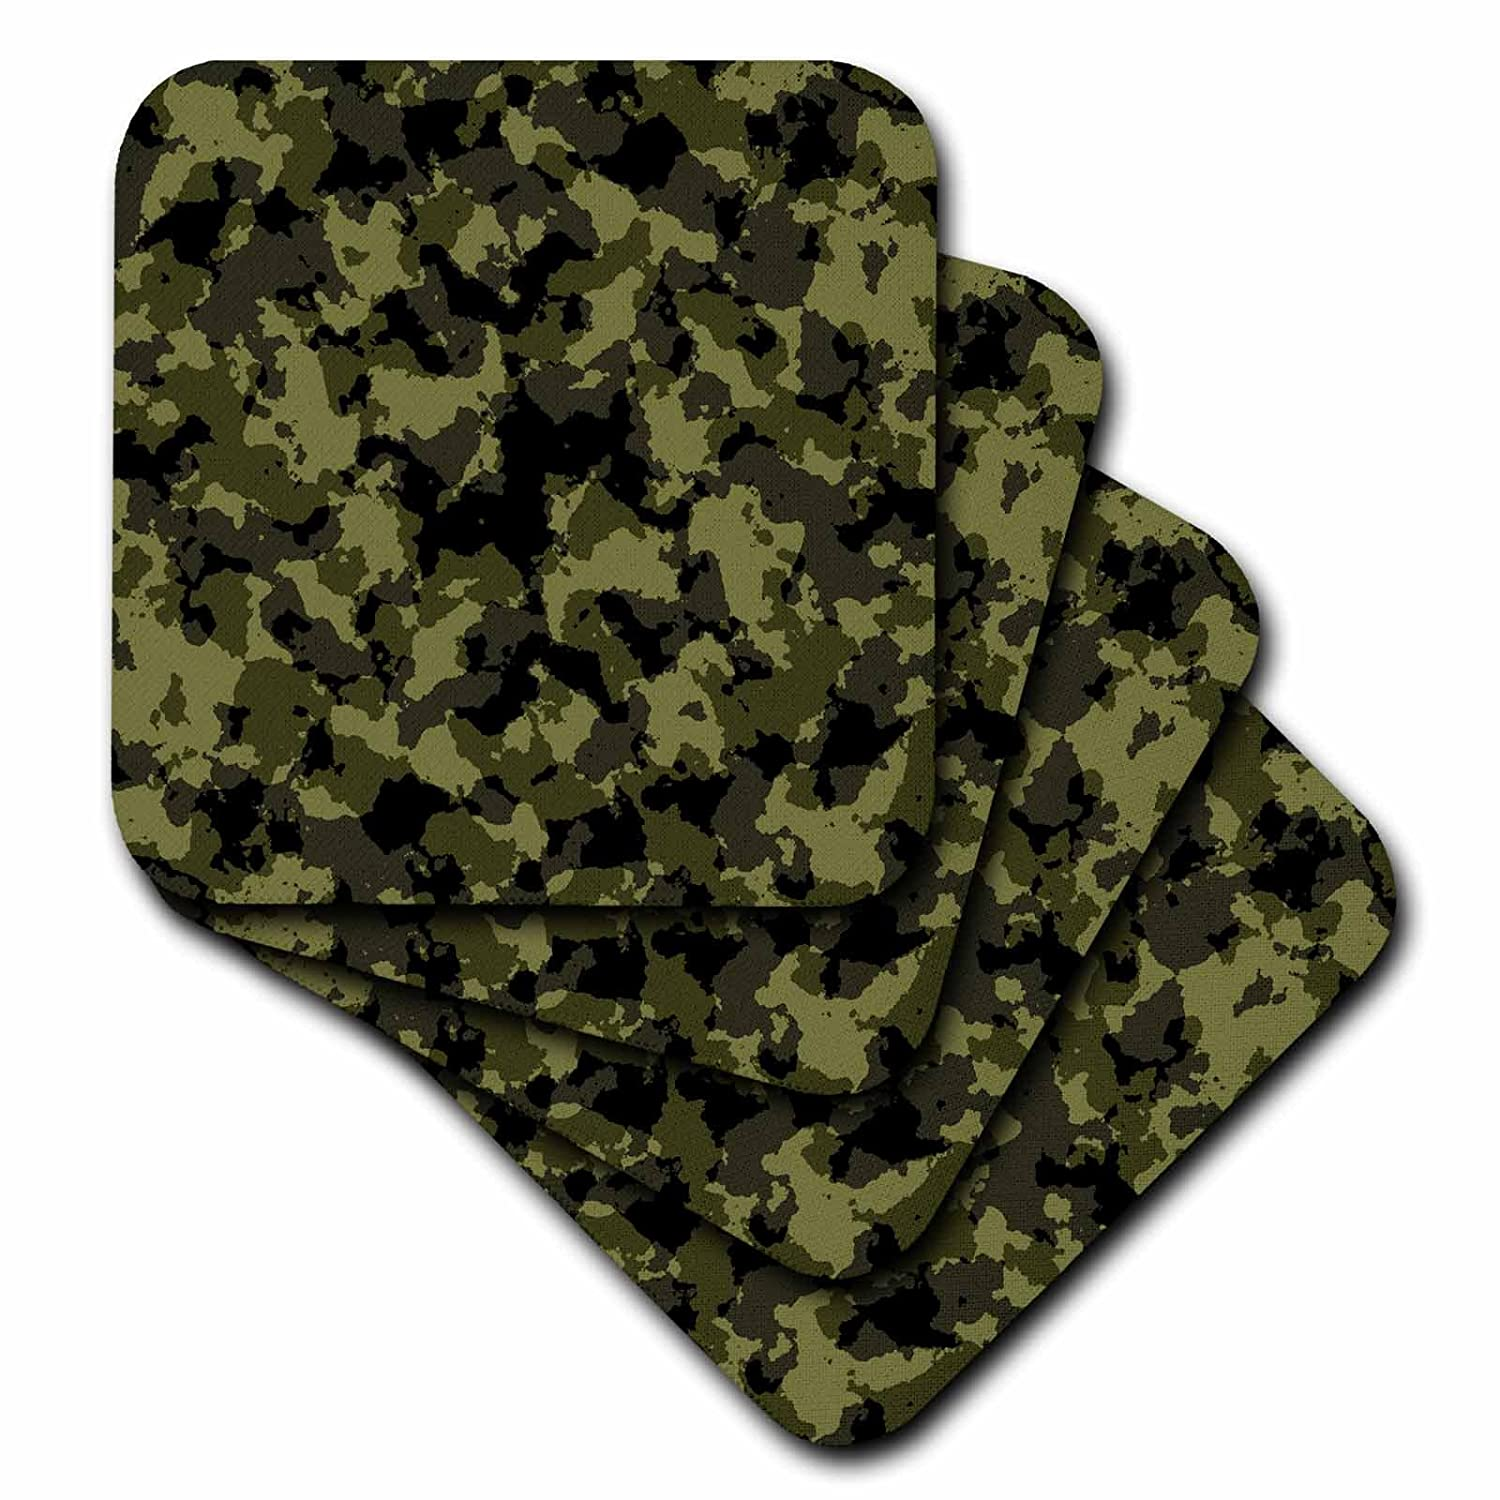 set of 4 Ceramic Tile Coasters cst/_271866/_3 Space for custom text Texture Camouflage 3dRose Alexis Design Green and black military camouflage texture